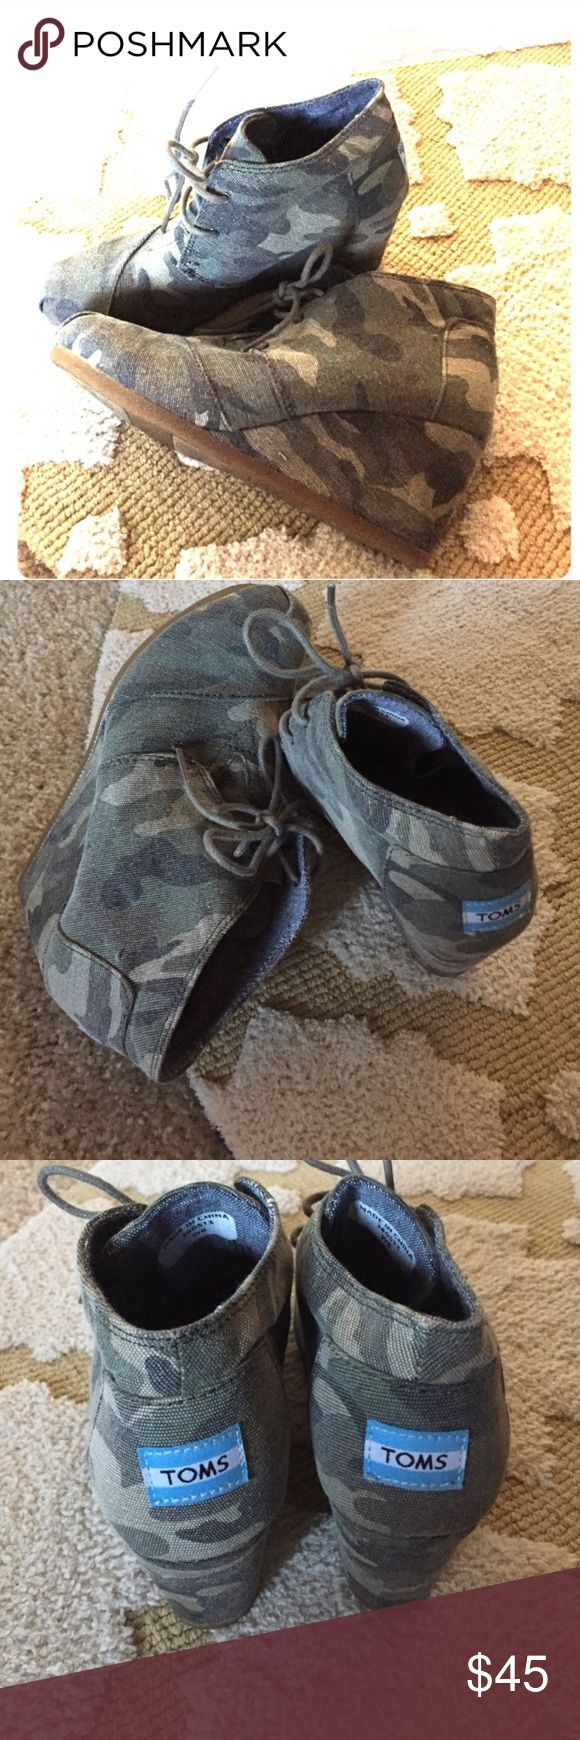 CAMO toms -SZ 6! Excellent condition. No signs of wear. Worn once. Super cute camo pattern! TOMS Shoes Ankle Boots & Booties